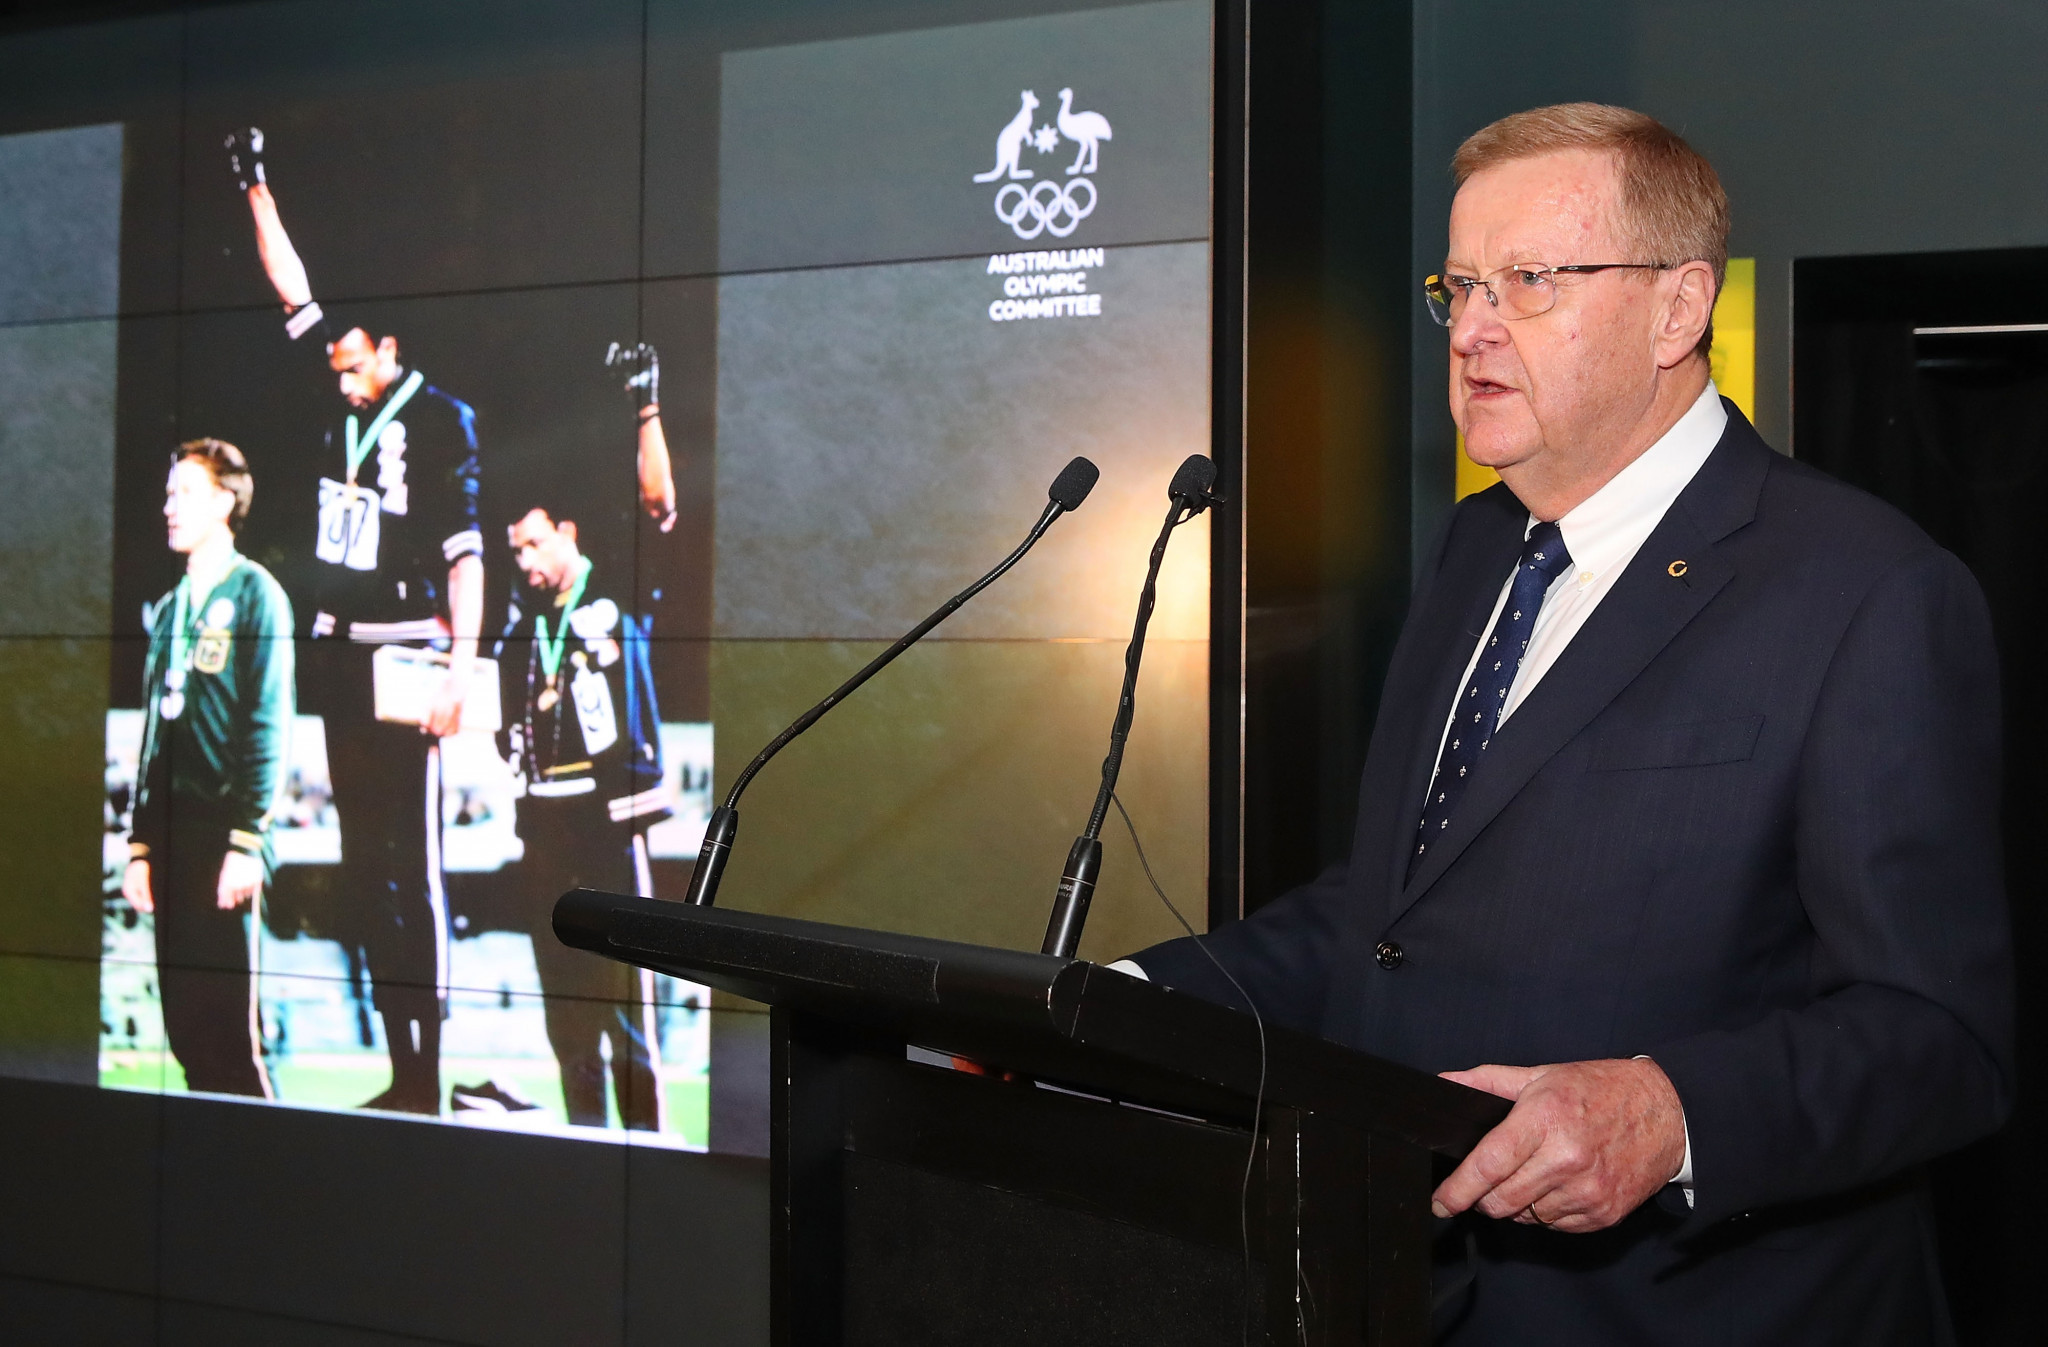 AOC award Olympic Order of Merit to family of Peter Norman